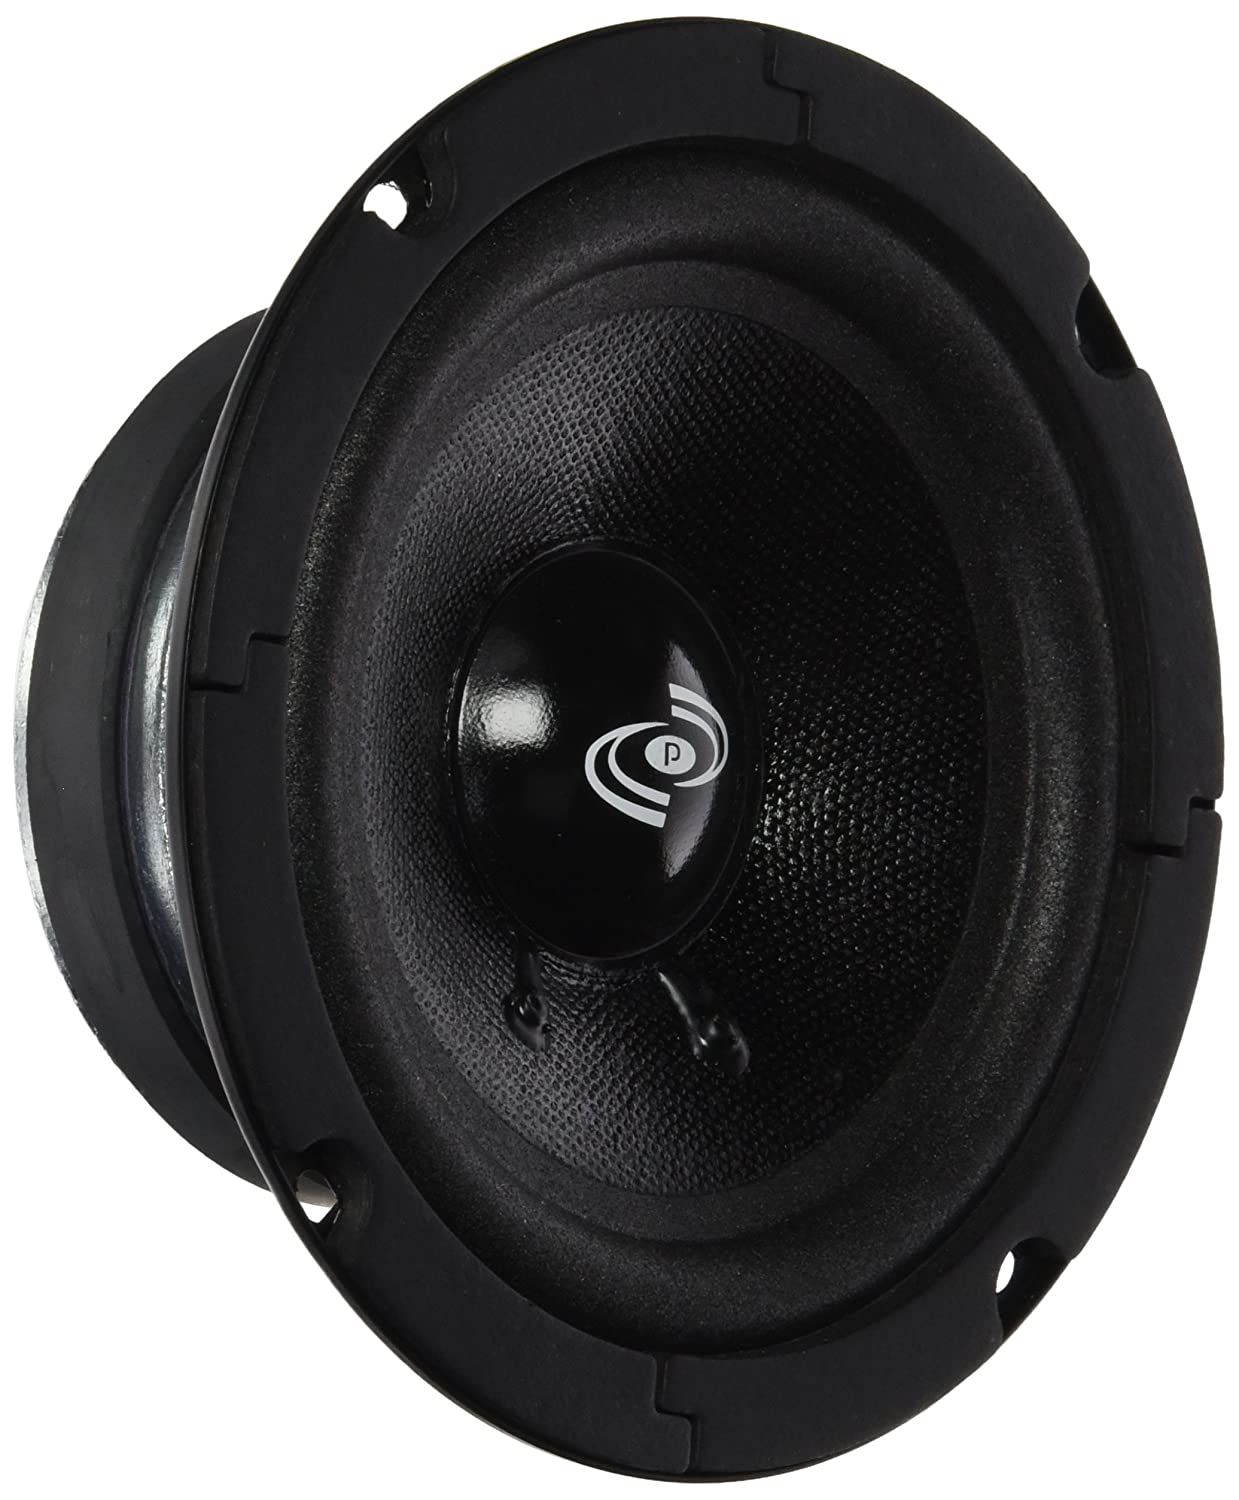 Pyle-Pro PDMW5 5-Inch High Performance Mid-Bass Woofer Sound Around